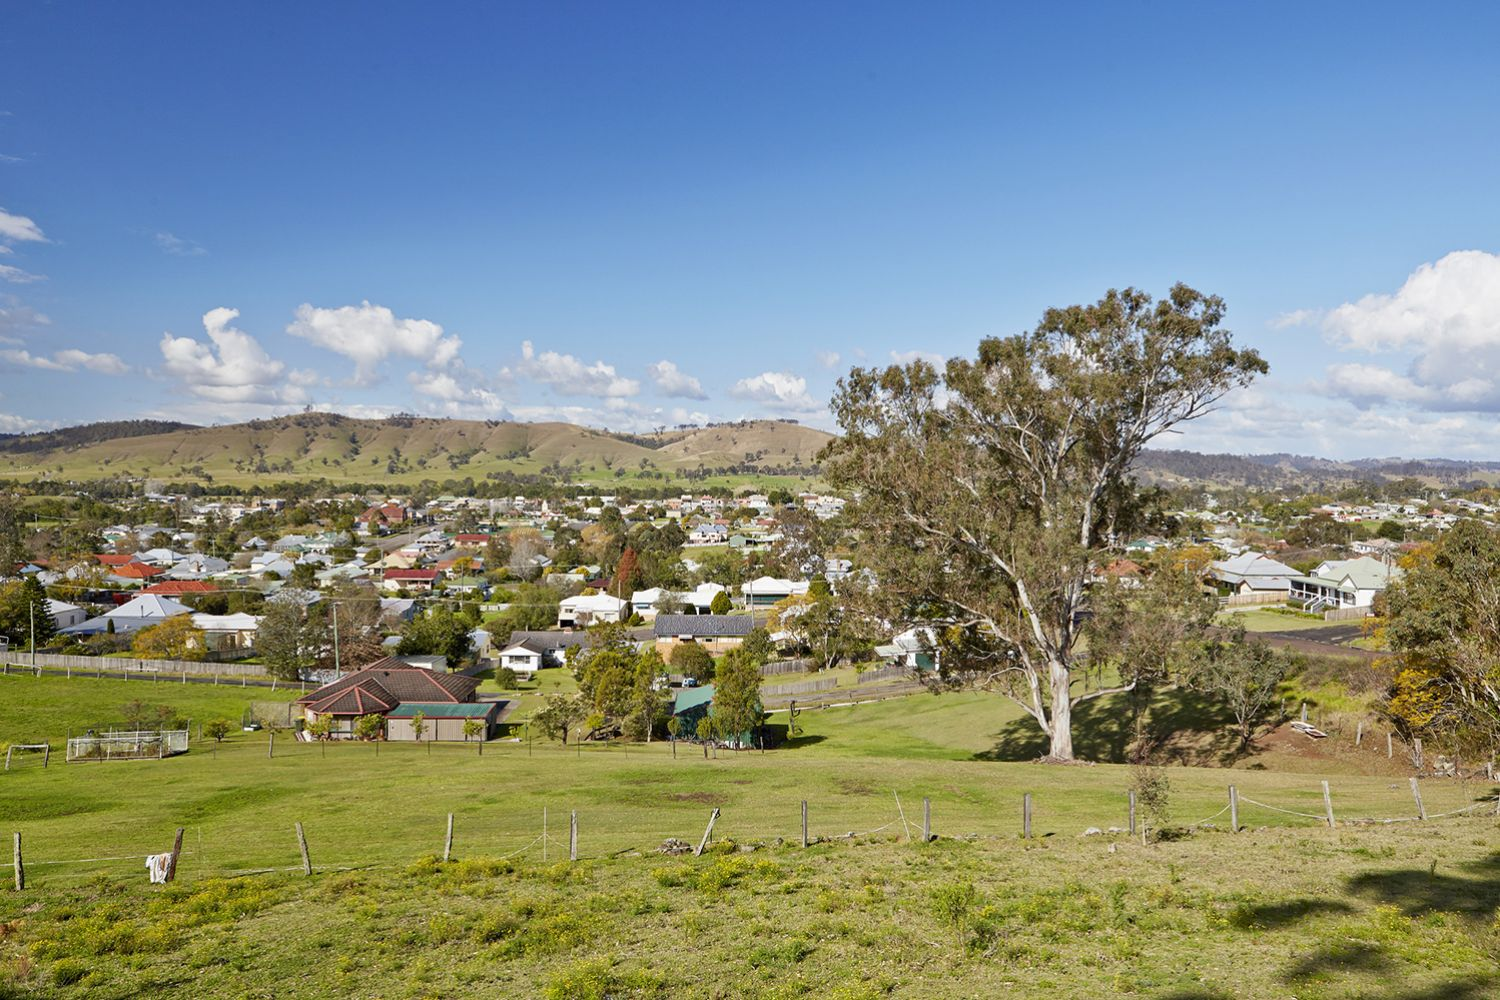 Scenic town and country landscape surrounding Dungog